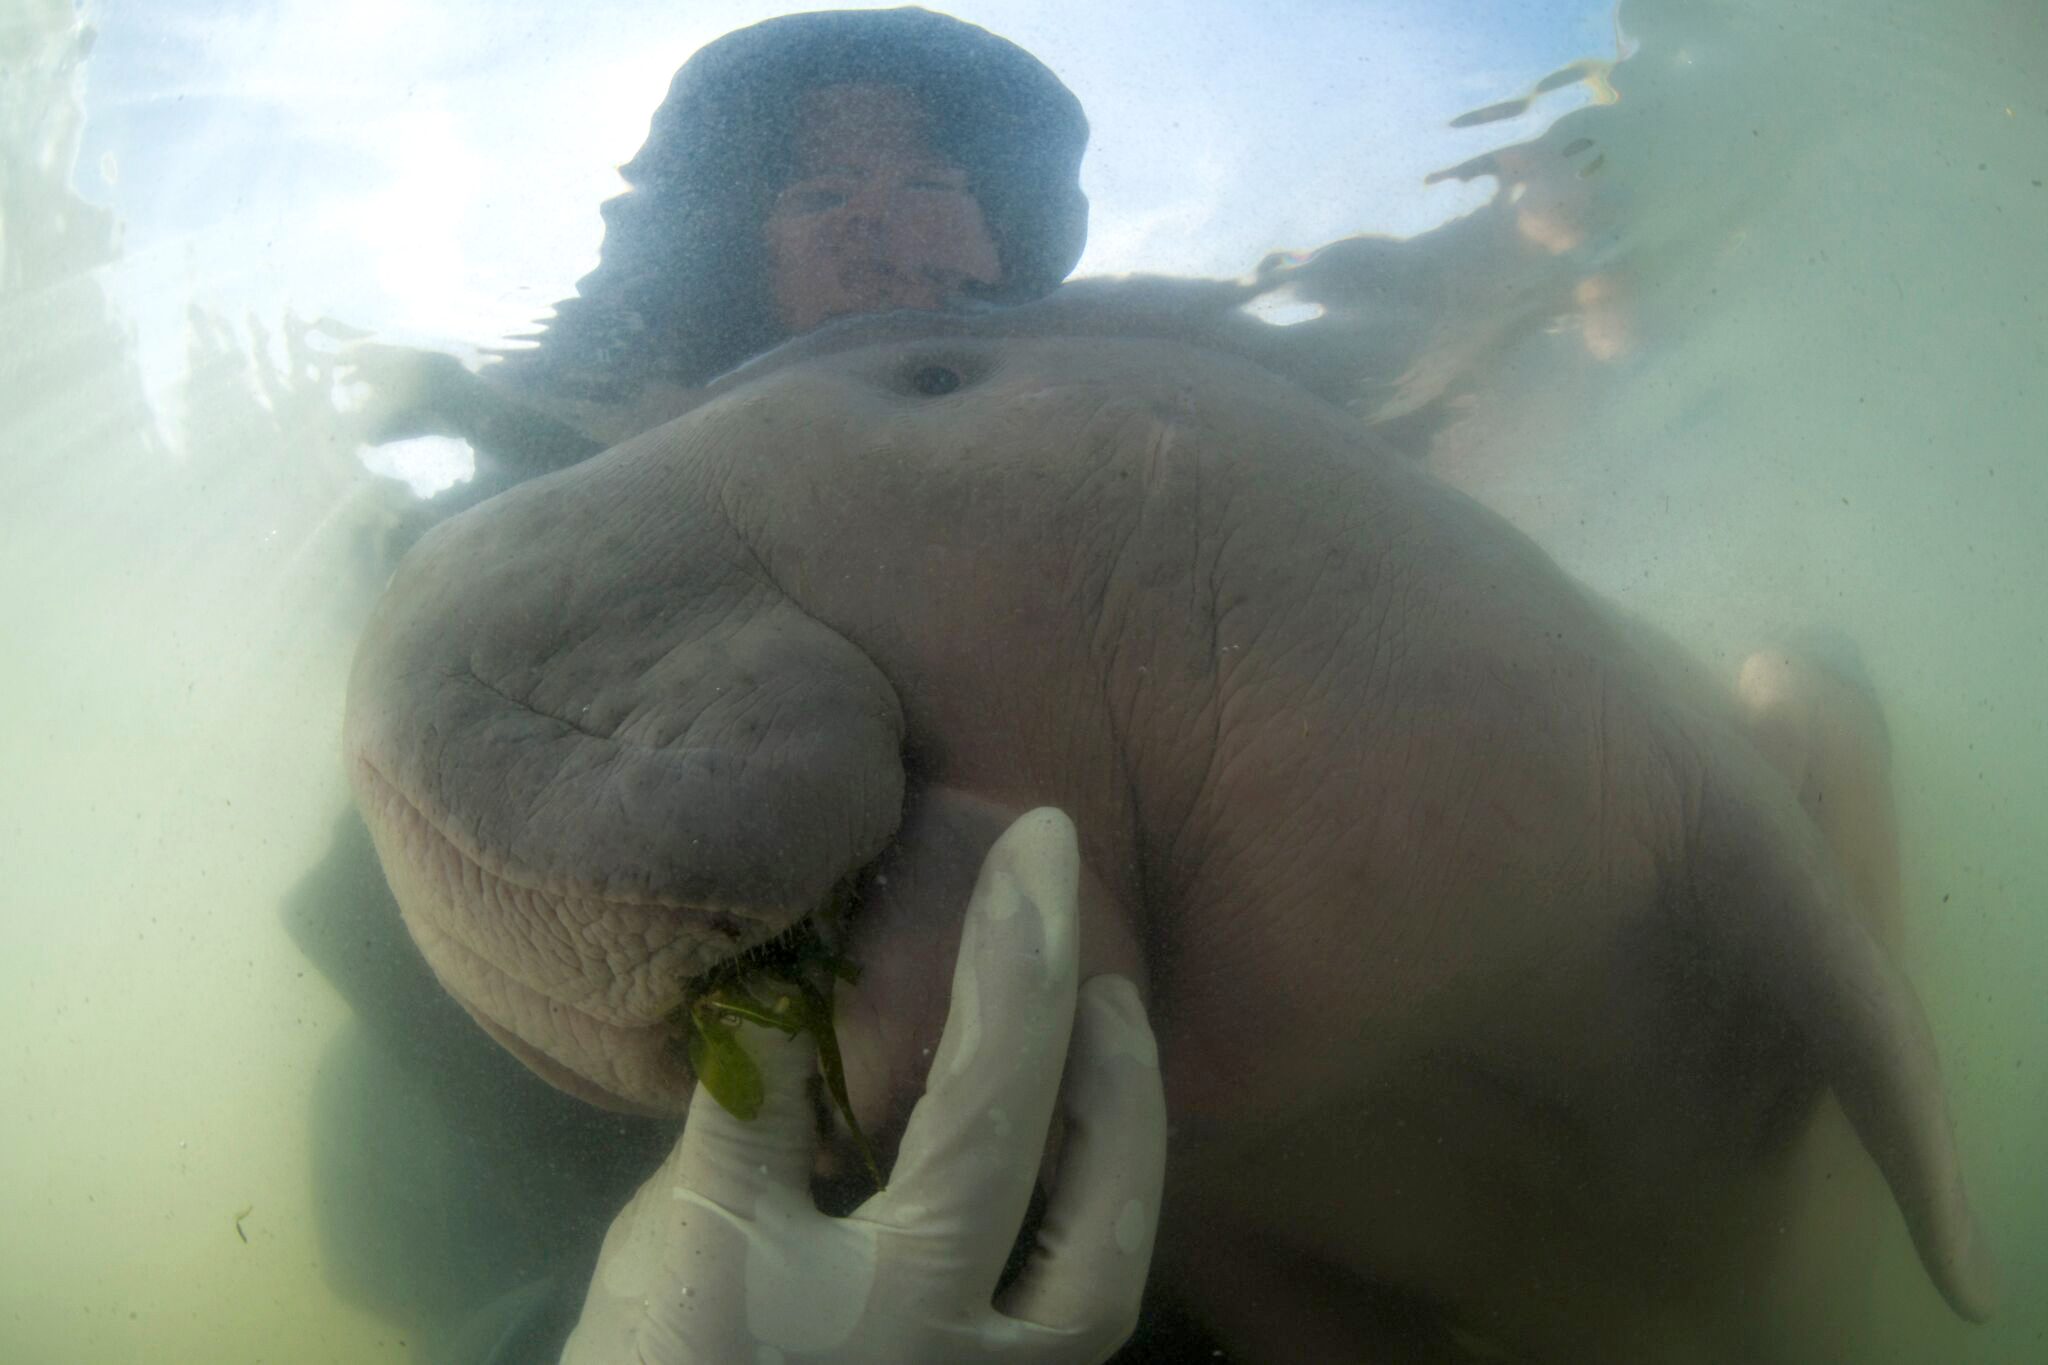 Thailands lost baby dugong dies from shock, eating plastic